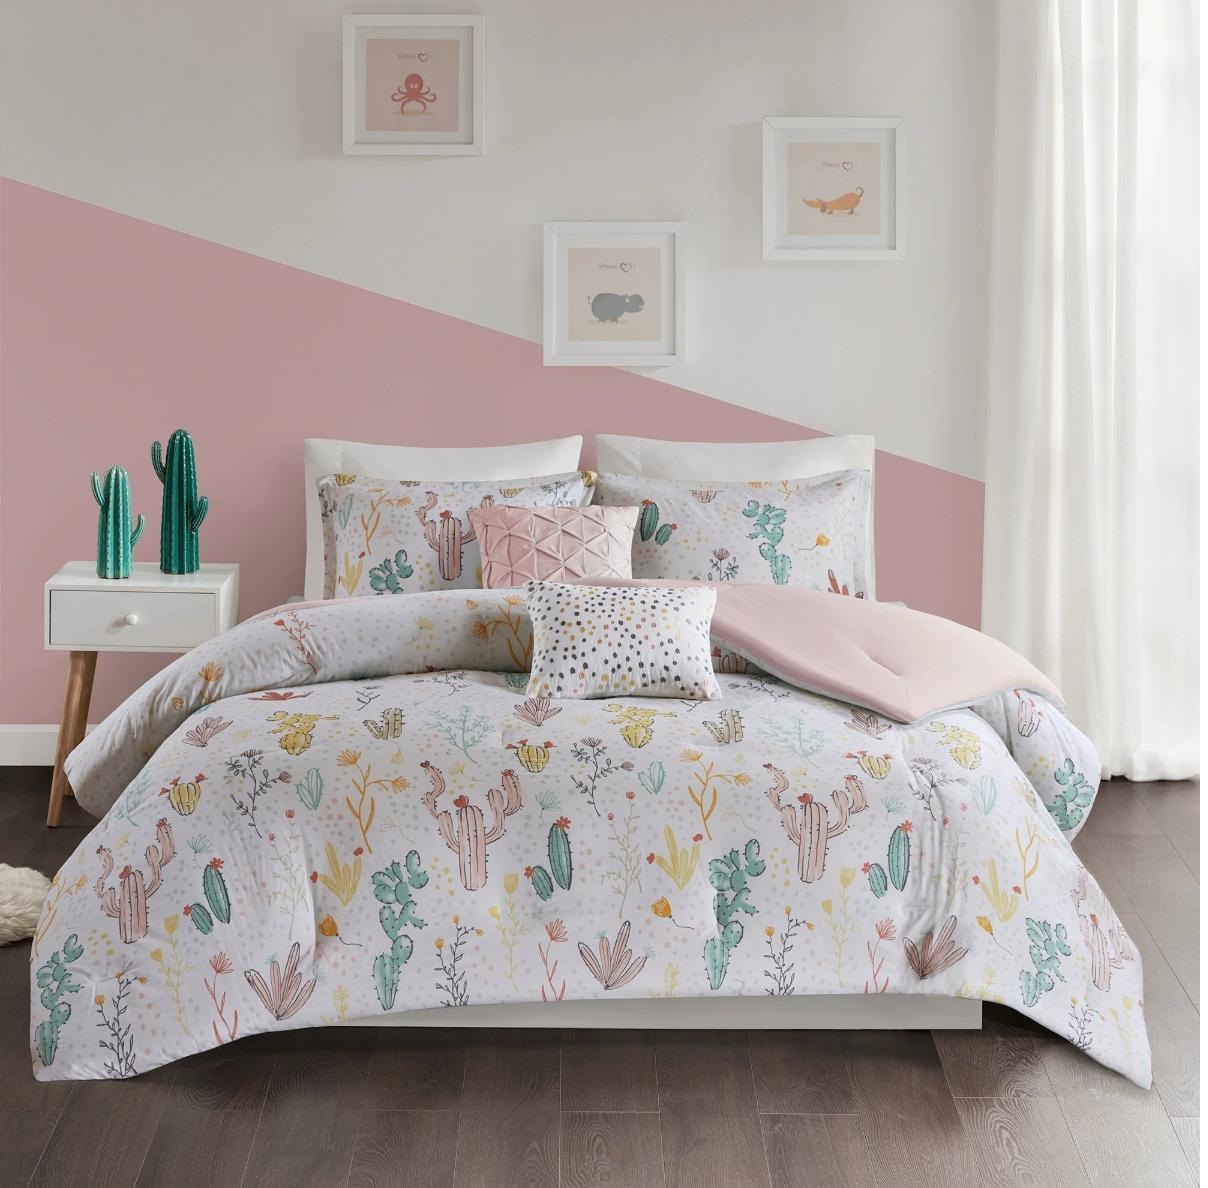 twin xl full queen bed green white